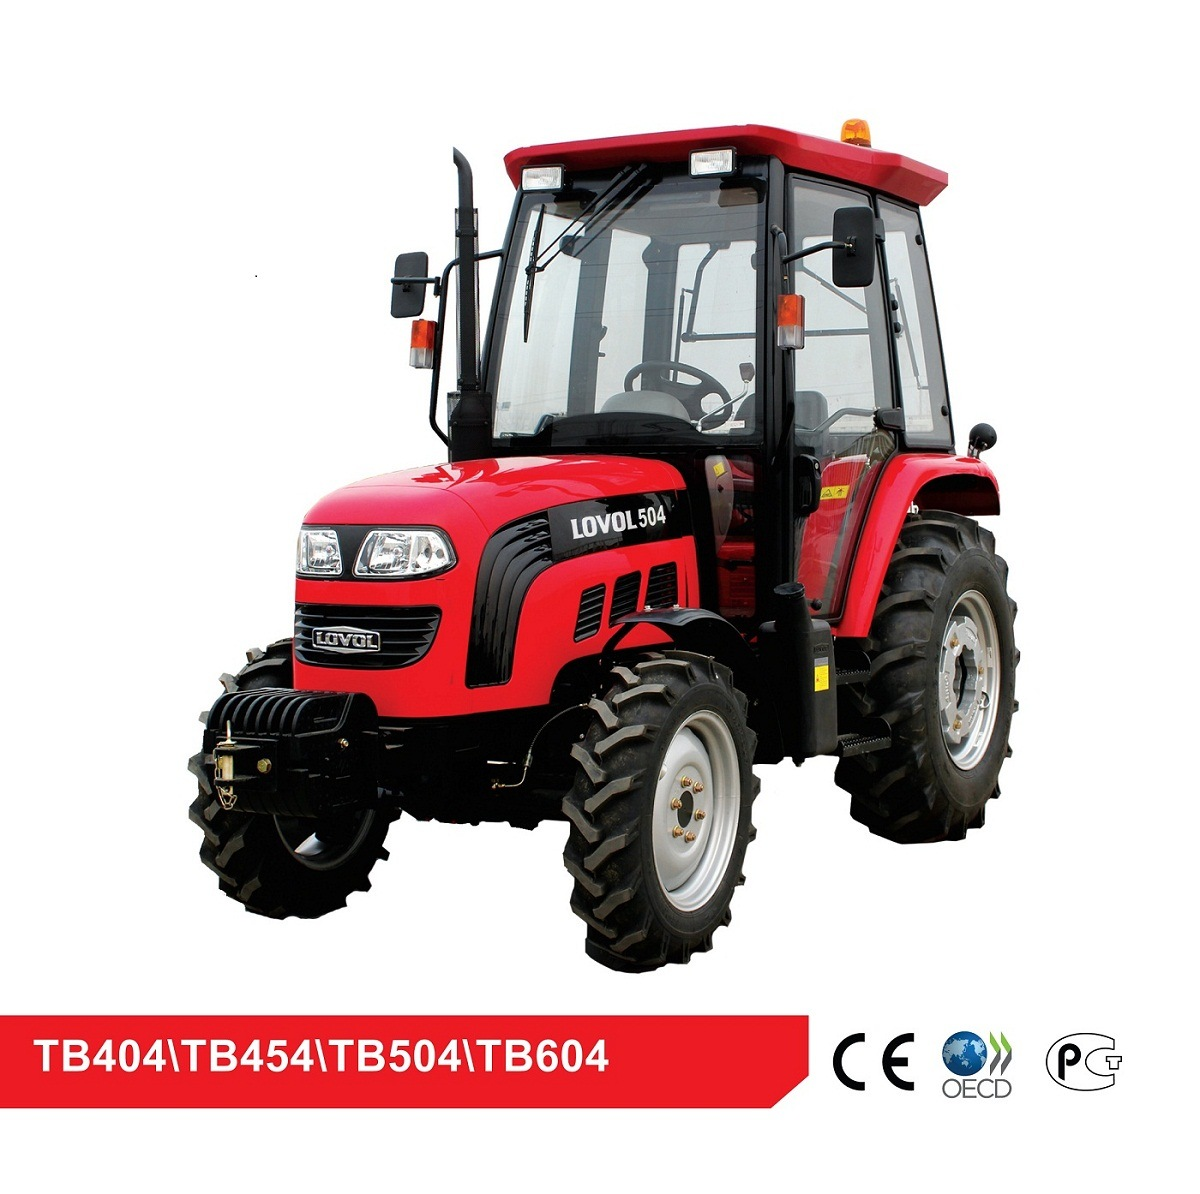 China Foton Lovol 30-60 HP 4WD Farm Walking Garden Lovol Tractor with CE and EPA4F